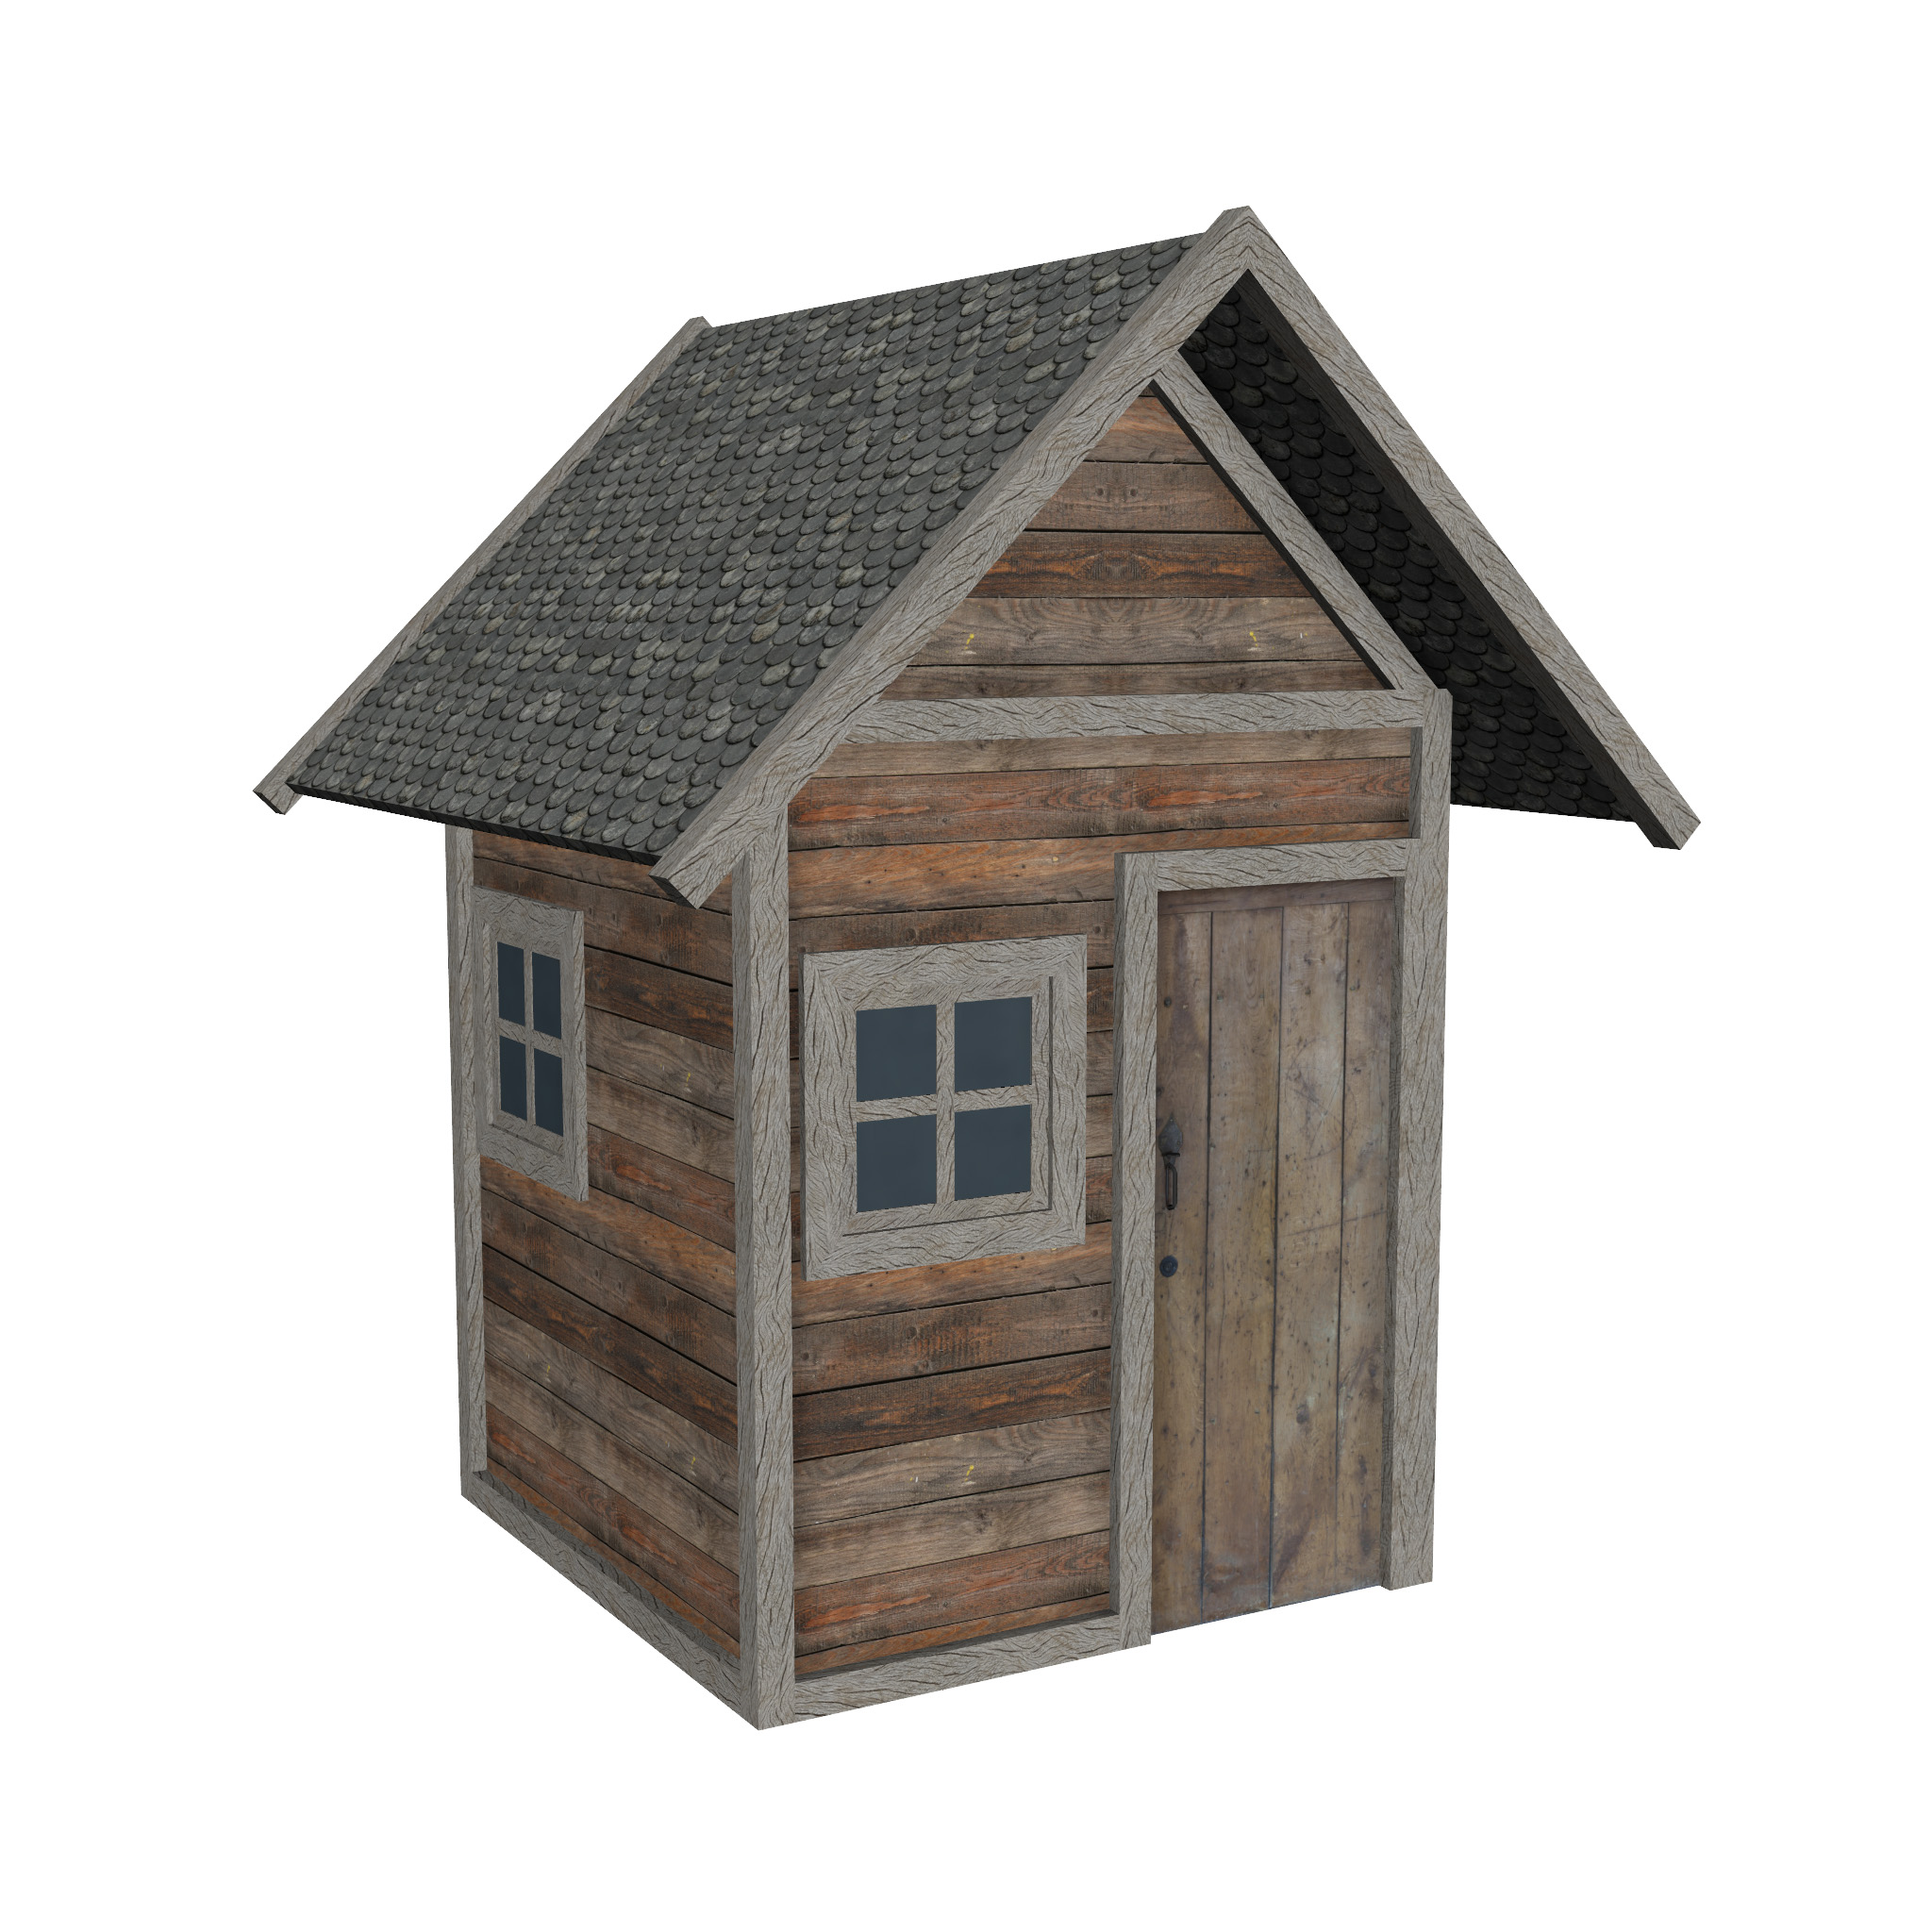 modular wood house set 3d model fbx ma mb 271453